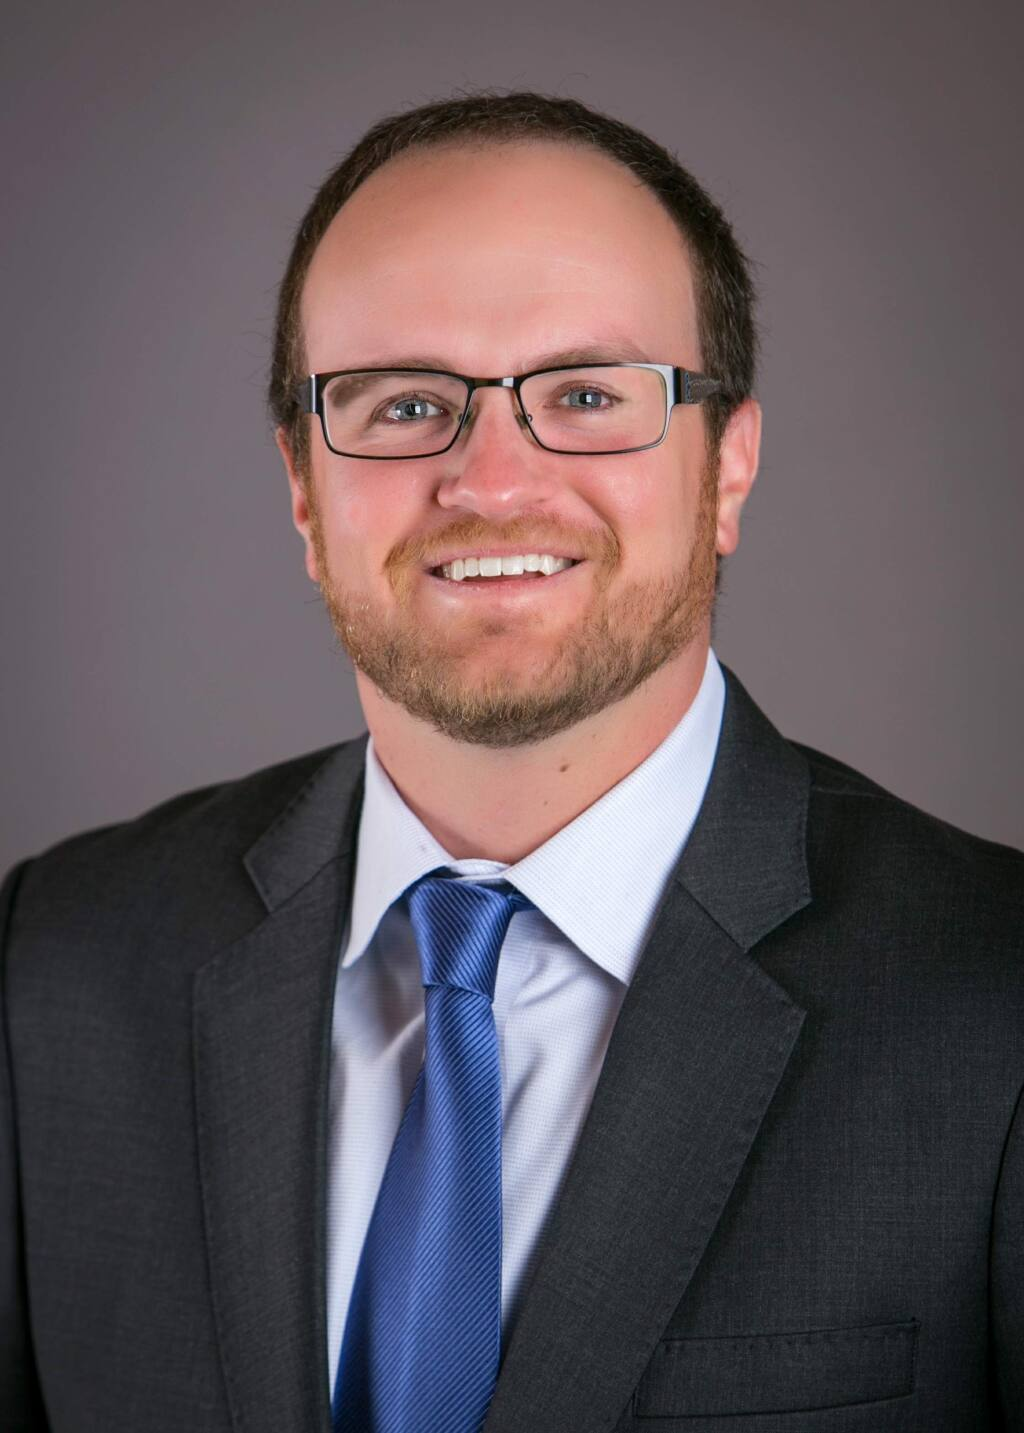 Matthew Hunstock, 38, financial adviser for Ameriprise Financial Services Inc. in Santa Rosa, is one of North Bay Business Journal's Forty Under 40 notable young professionals for 2019. (BELLA PHOTOGRAPHY & DESIGN)